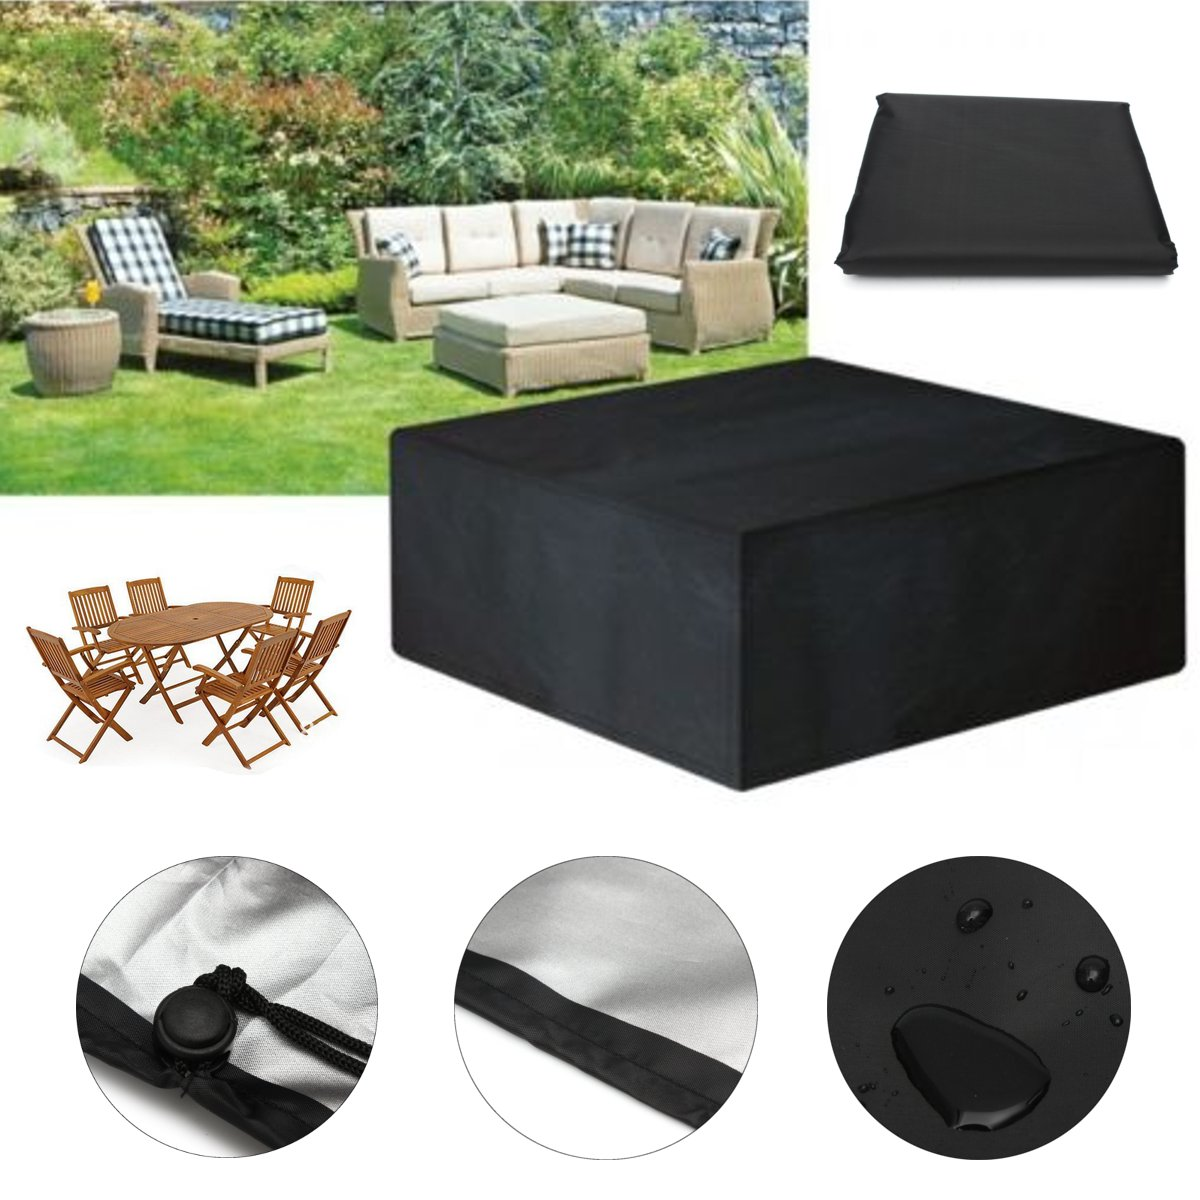 Waterproof Outdoor Patio Furniture Set Cover 205X104X71cm Garden Table  Protective Cover Dustproof Table Cloth Home Textile In Tablecloths From  Home U0026 Garden ...